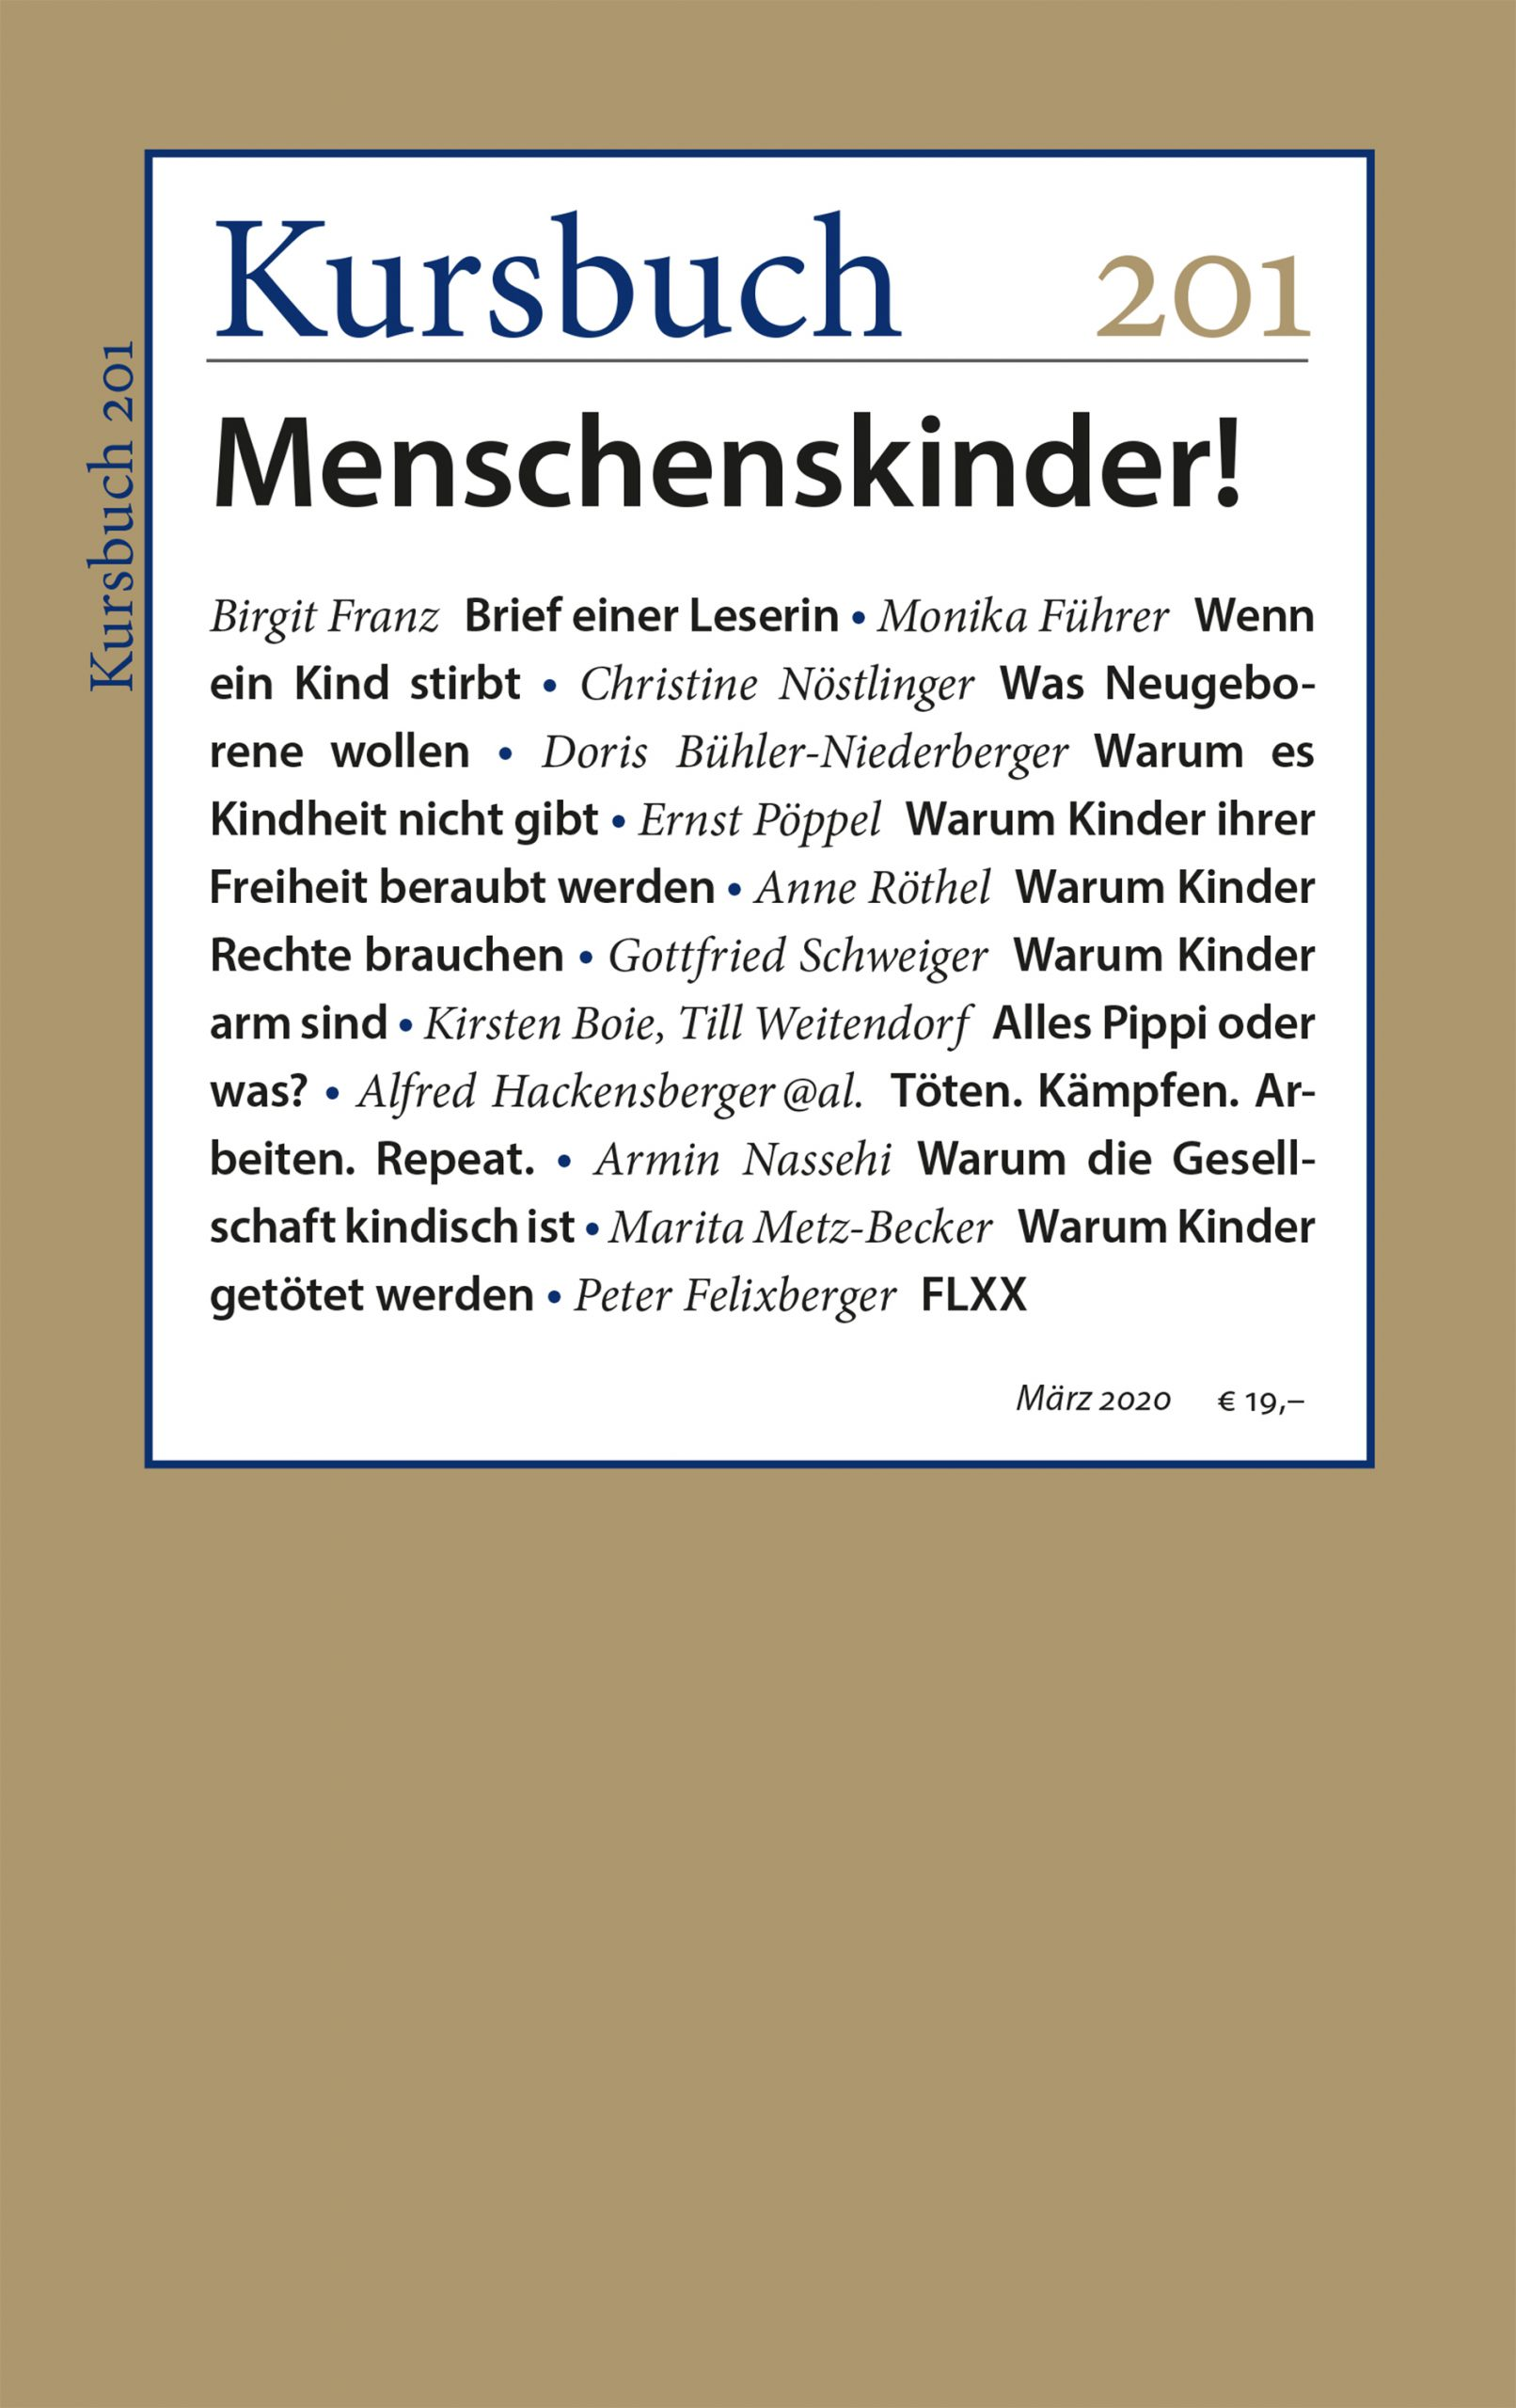 Kursbuch 201 – Editorial